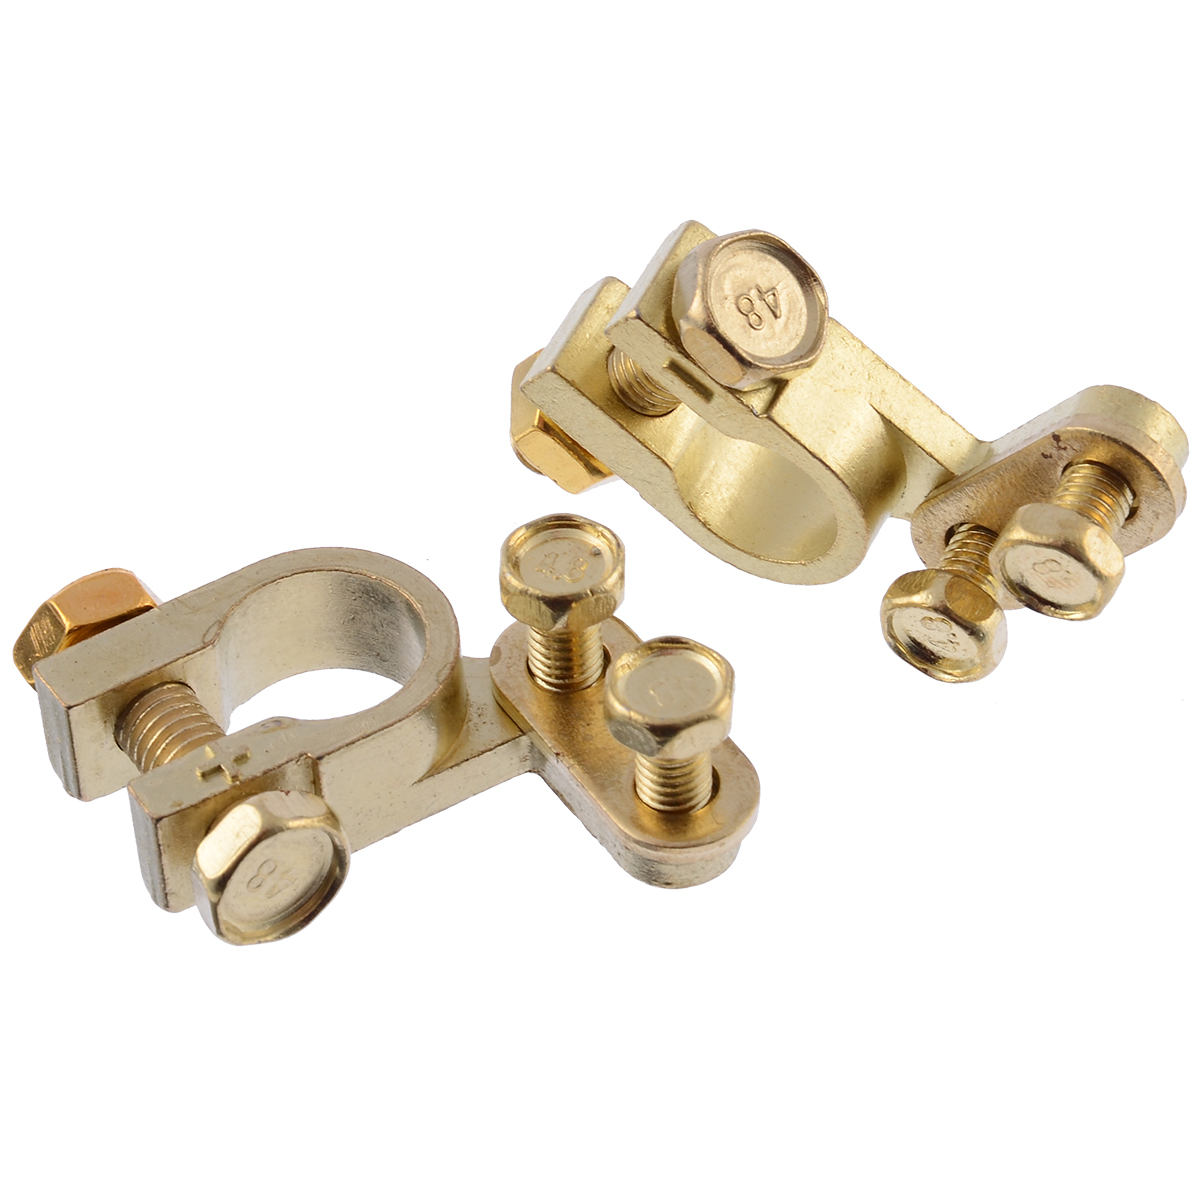 1 Pair Vehicles Battery Terminal 35mm Positive 34mm Negative Gold Plated Universal Vehicles Battery Terminals Universal